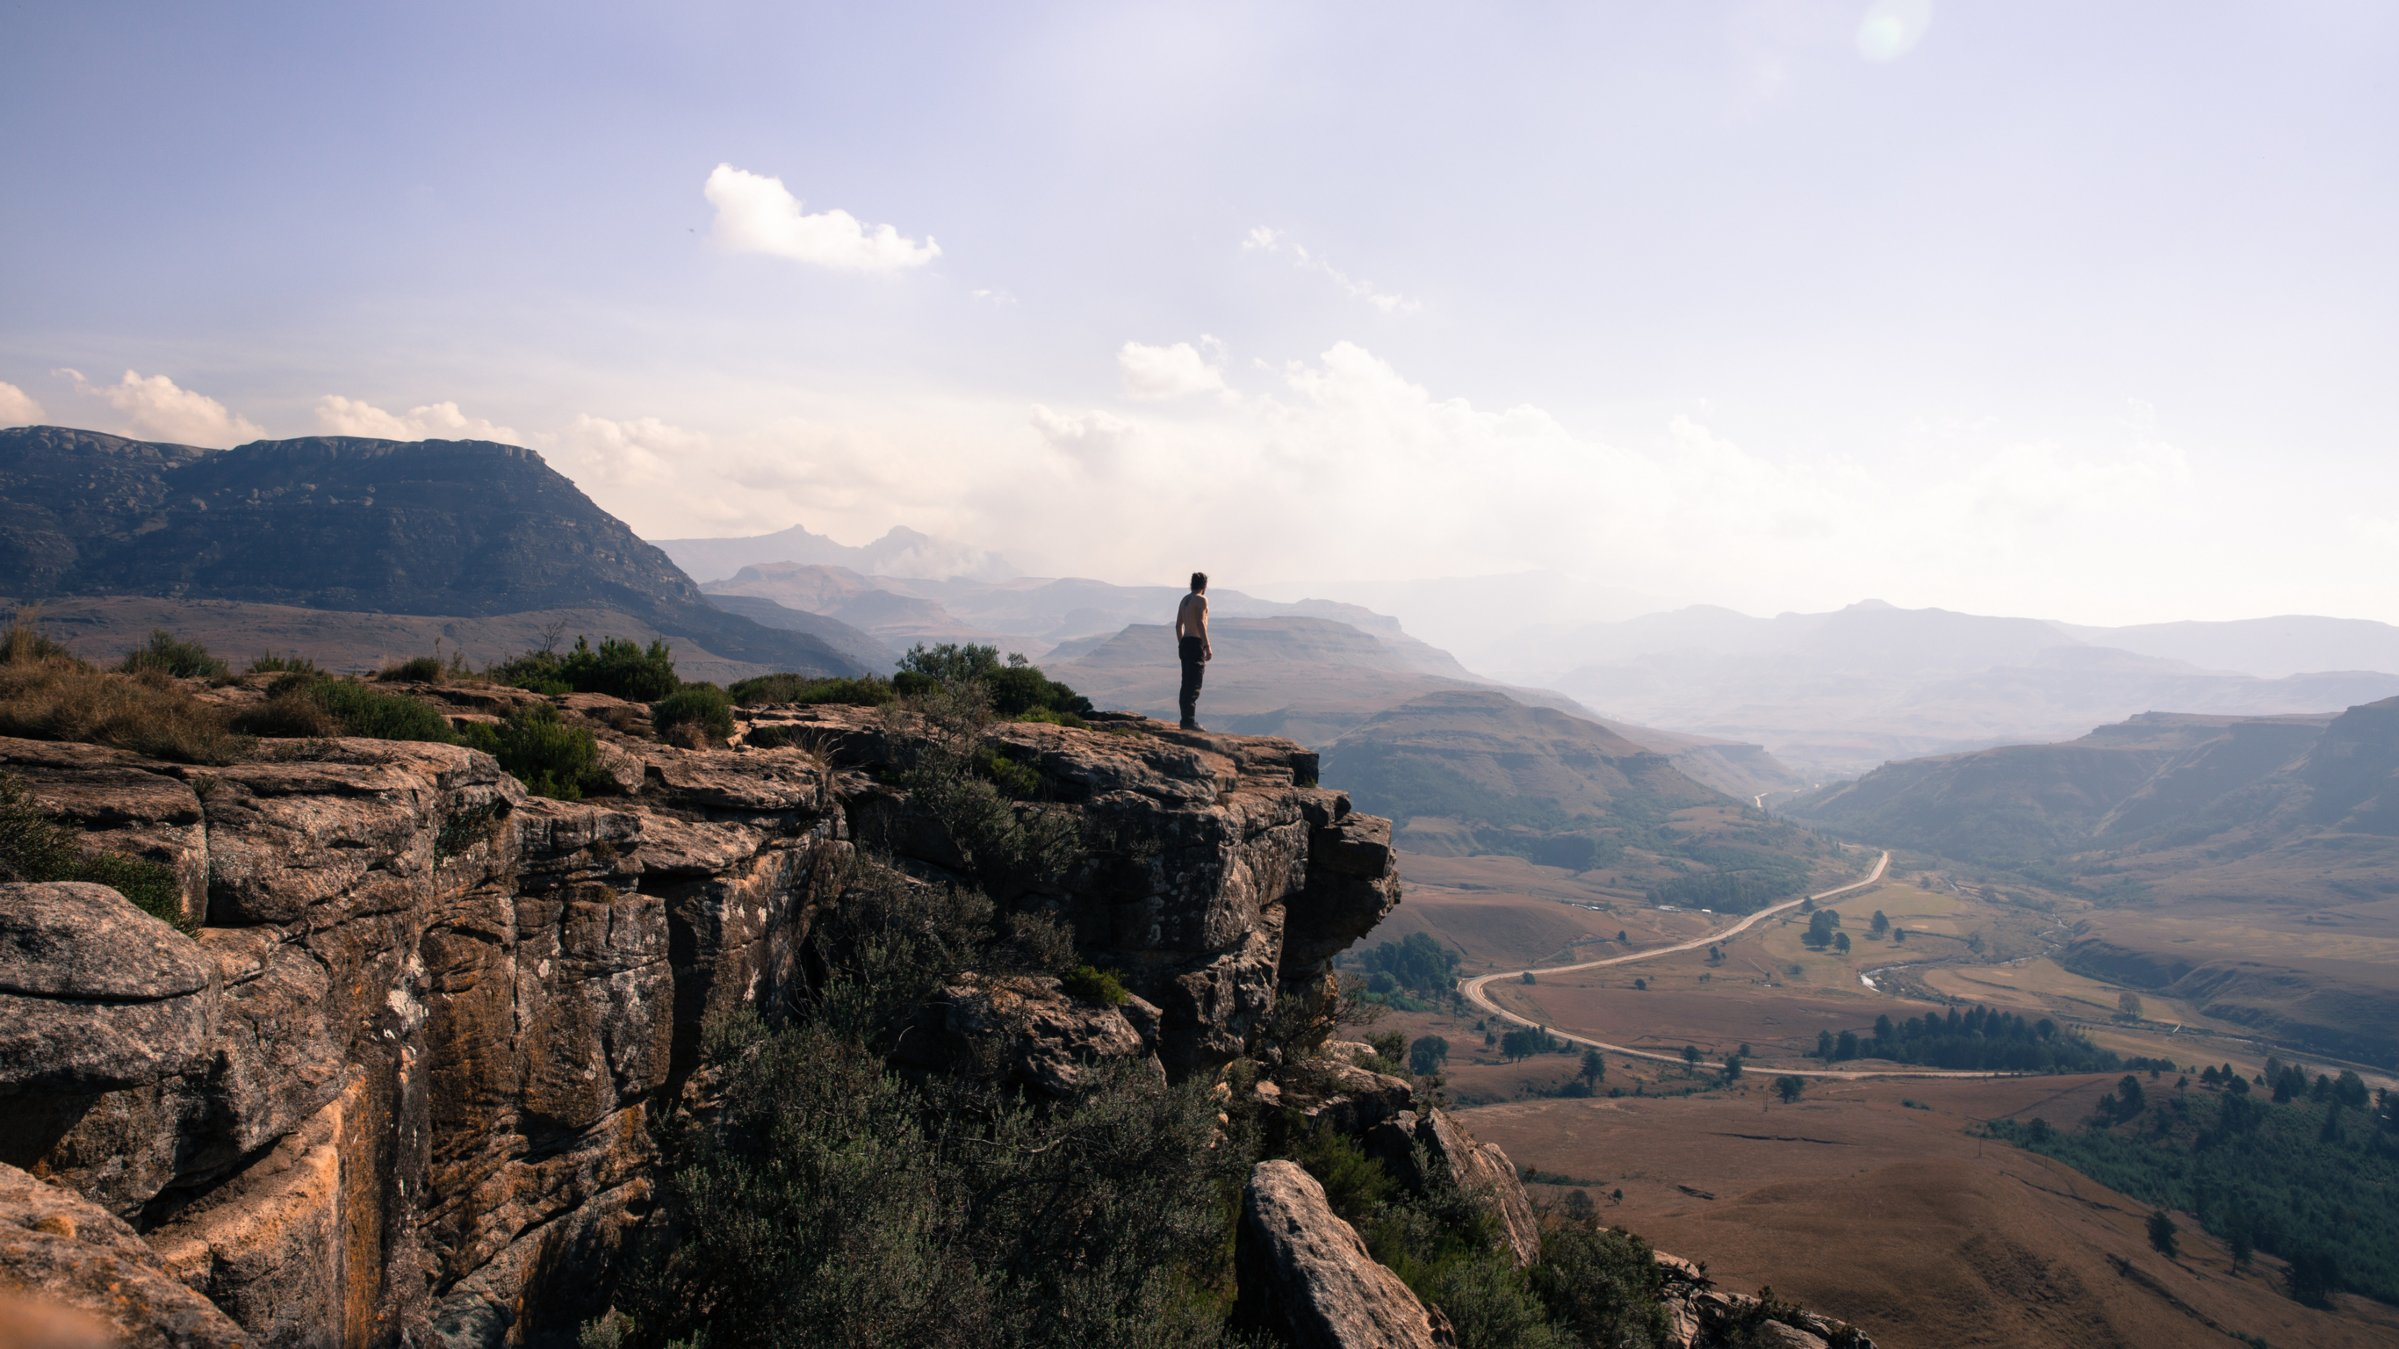 2-Day Culture and Hiking Lesotho Itinerary - South Africa and Lesotho Itinerary